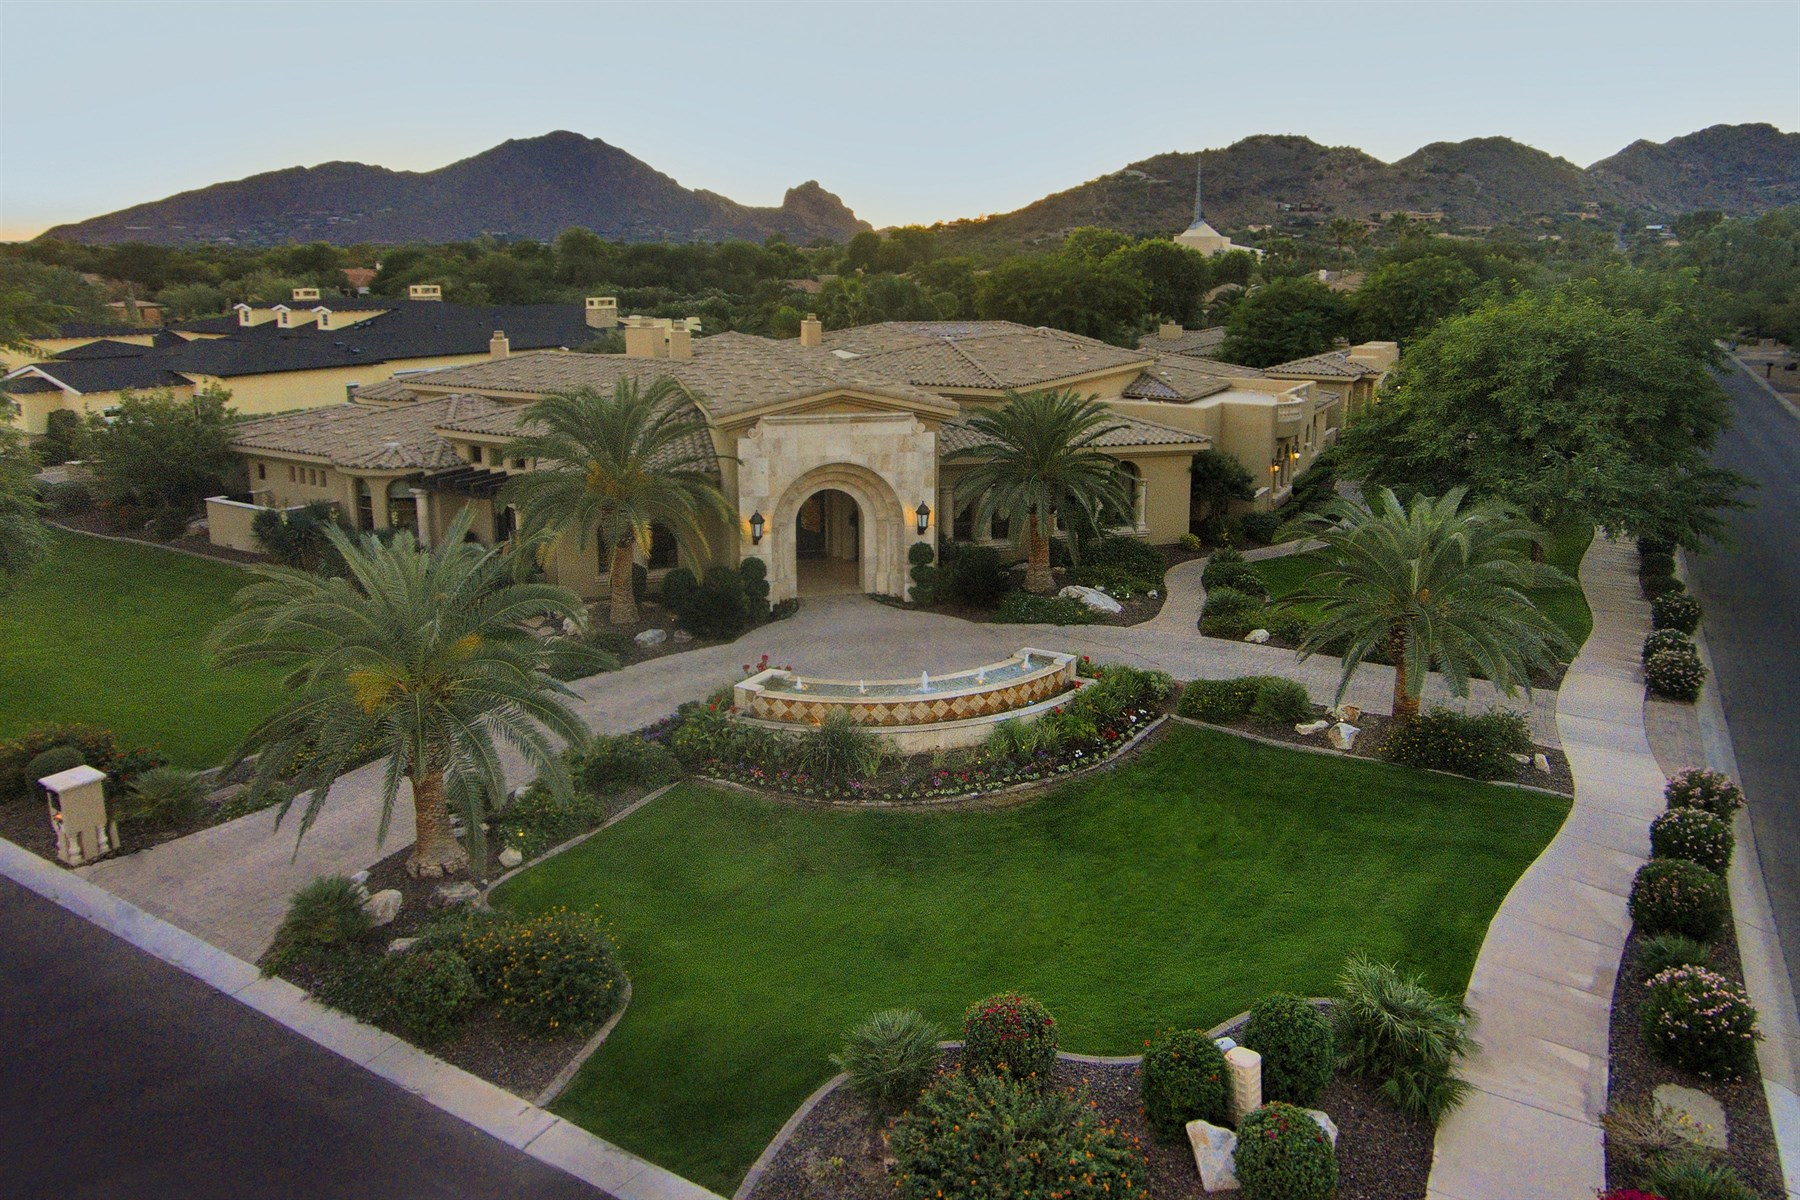 Moradia para Venda às World-Class Architectural Ed Chavez Residence On Estate Size Lot 7170 N 69th Place Paradise Valley, Arizona, 85253 Estados Unidos